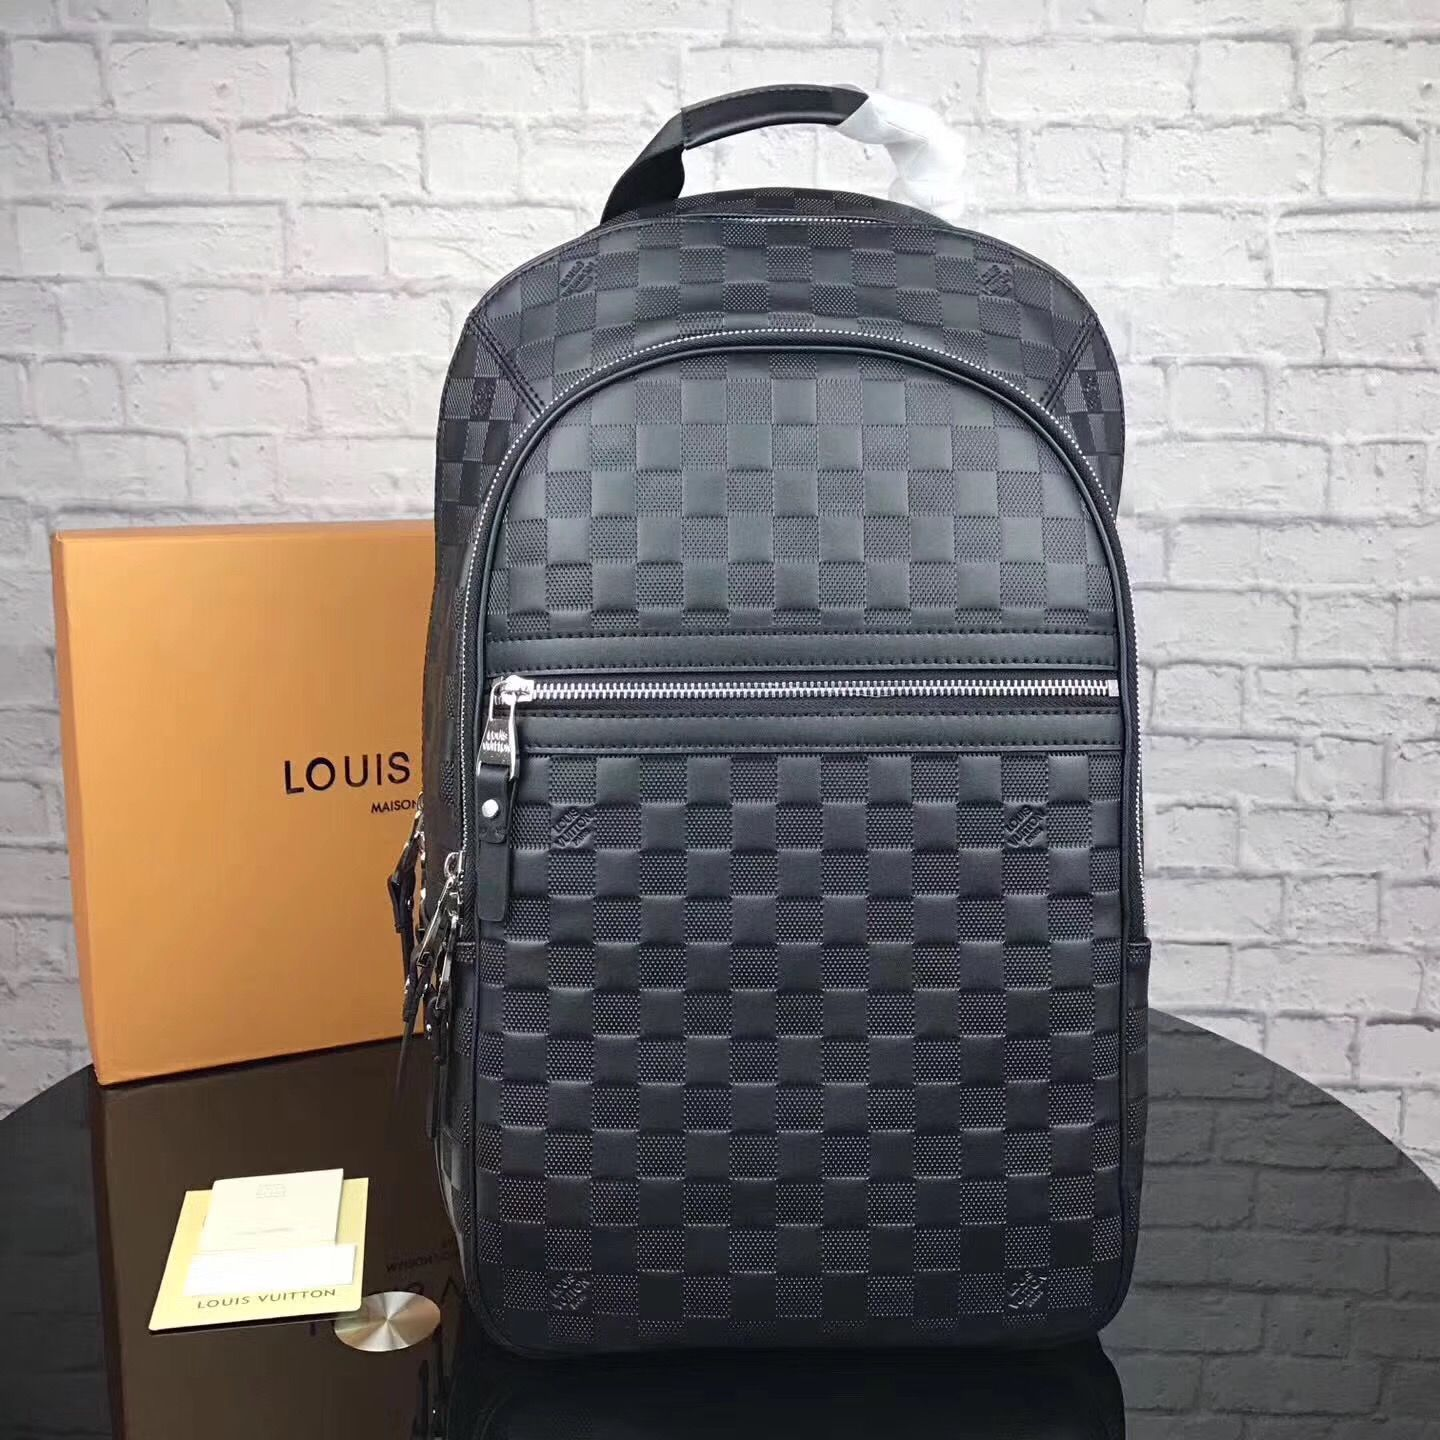 08e6cc0f9818 Louis Vuitton lv Michael backpack Damier infini leather